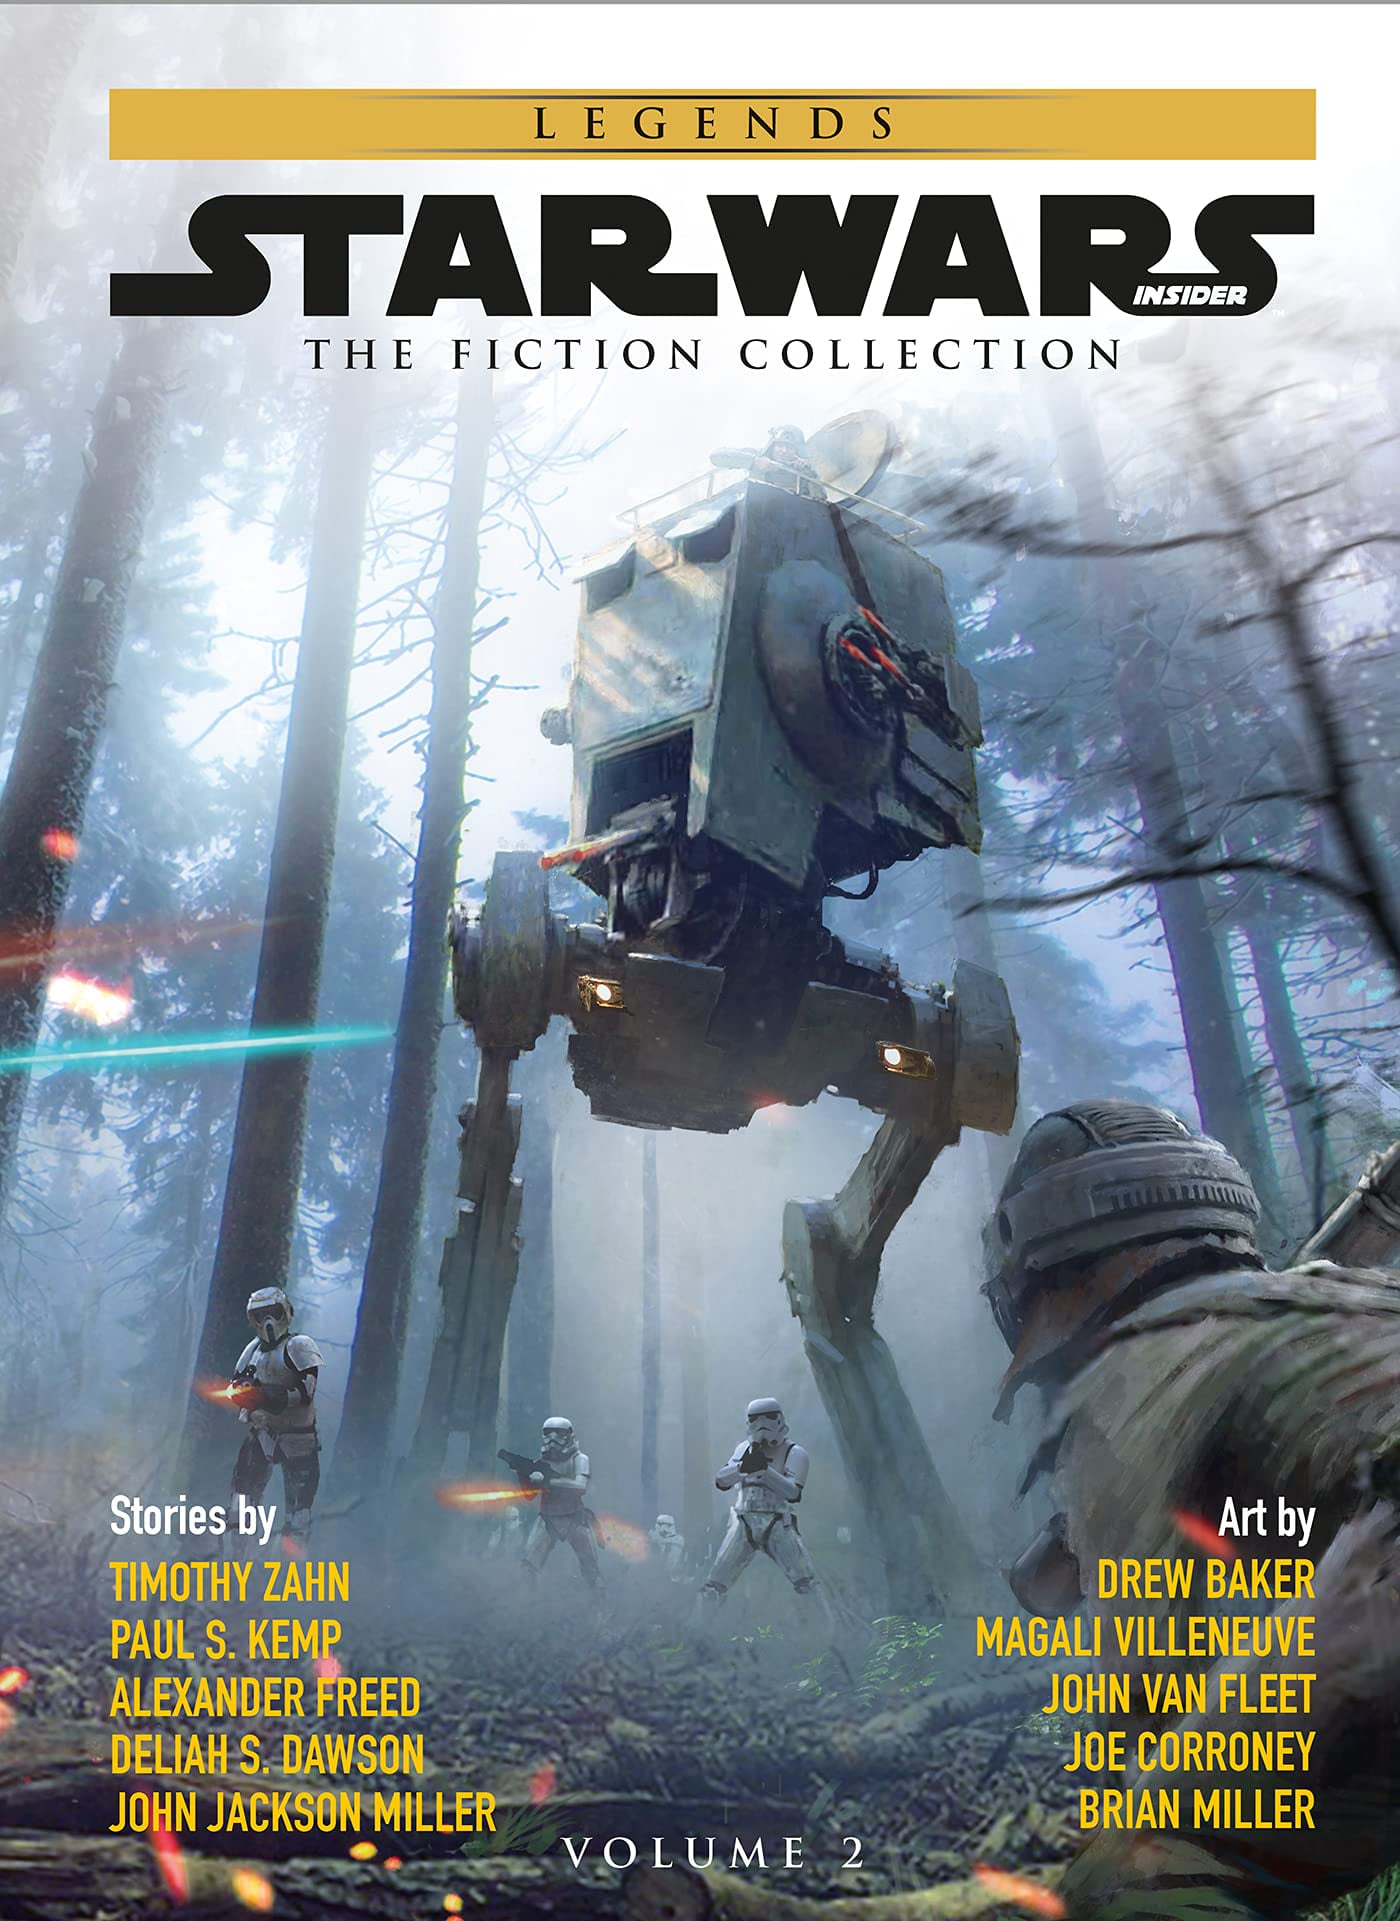 Star Wars Insider: The Fiction Collection Volume 2